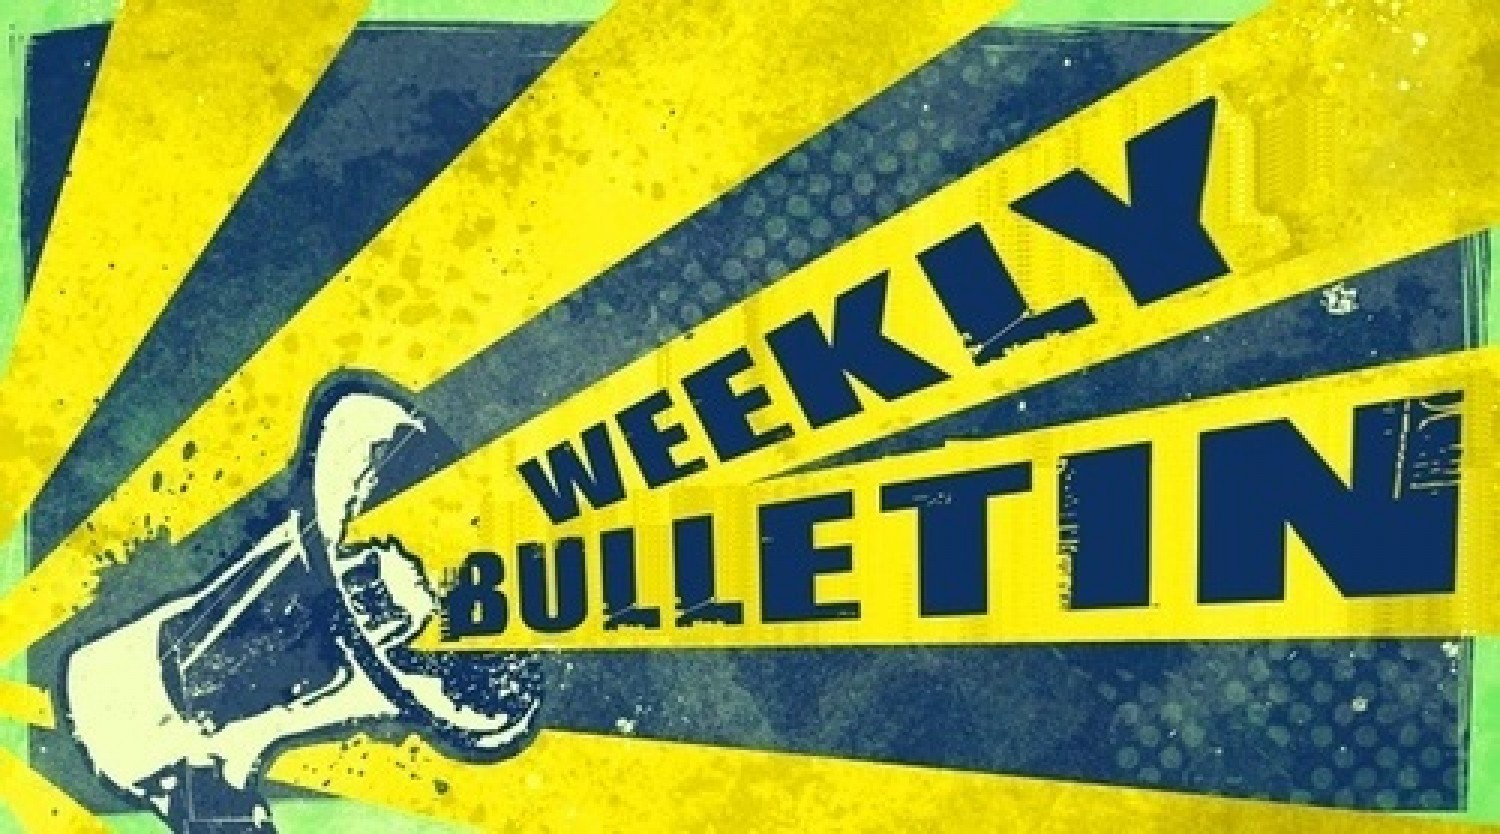 Weekly Bulletin June 14th